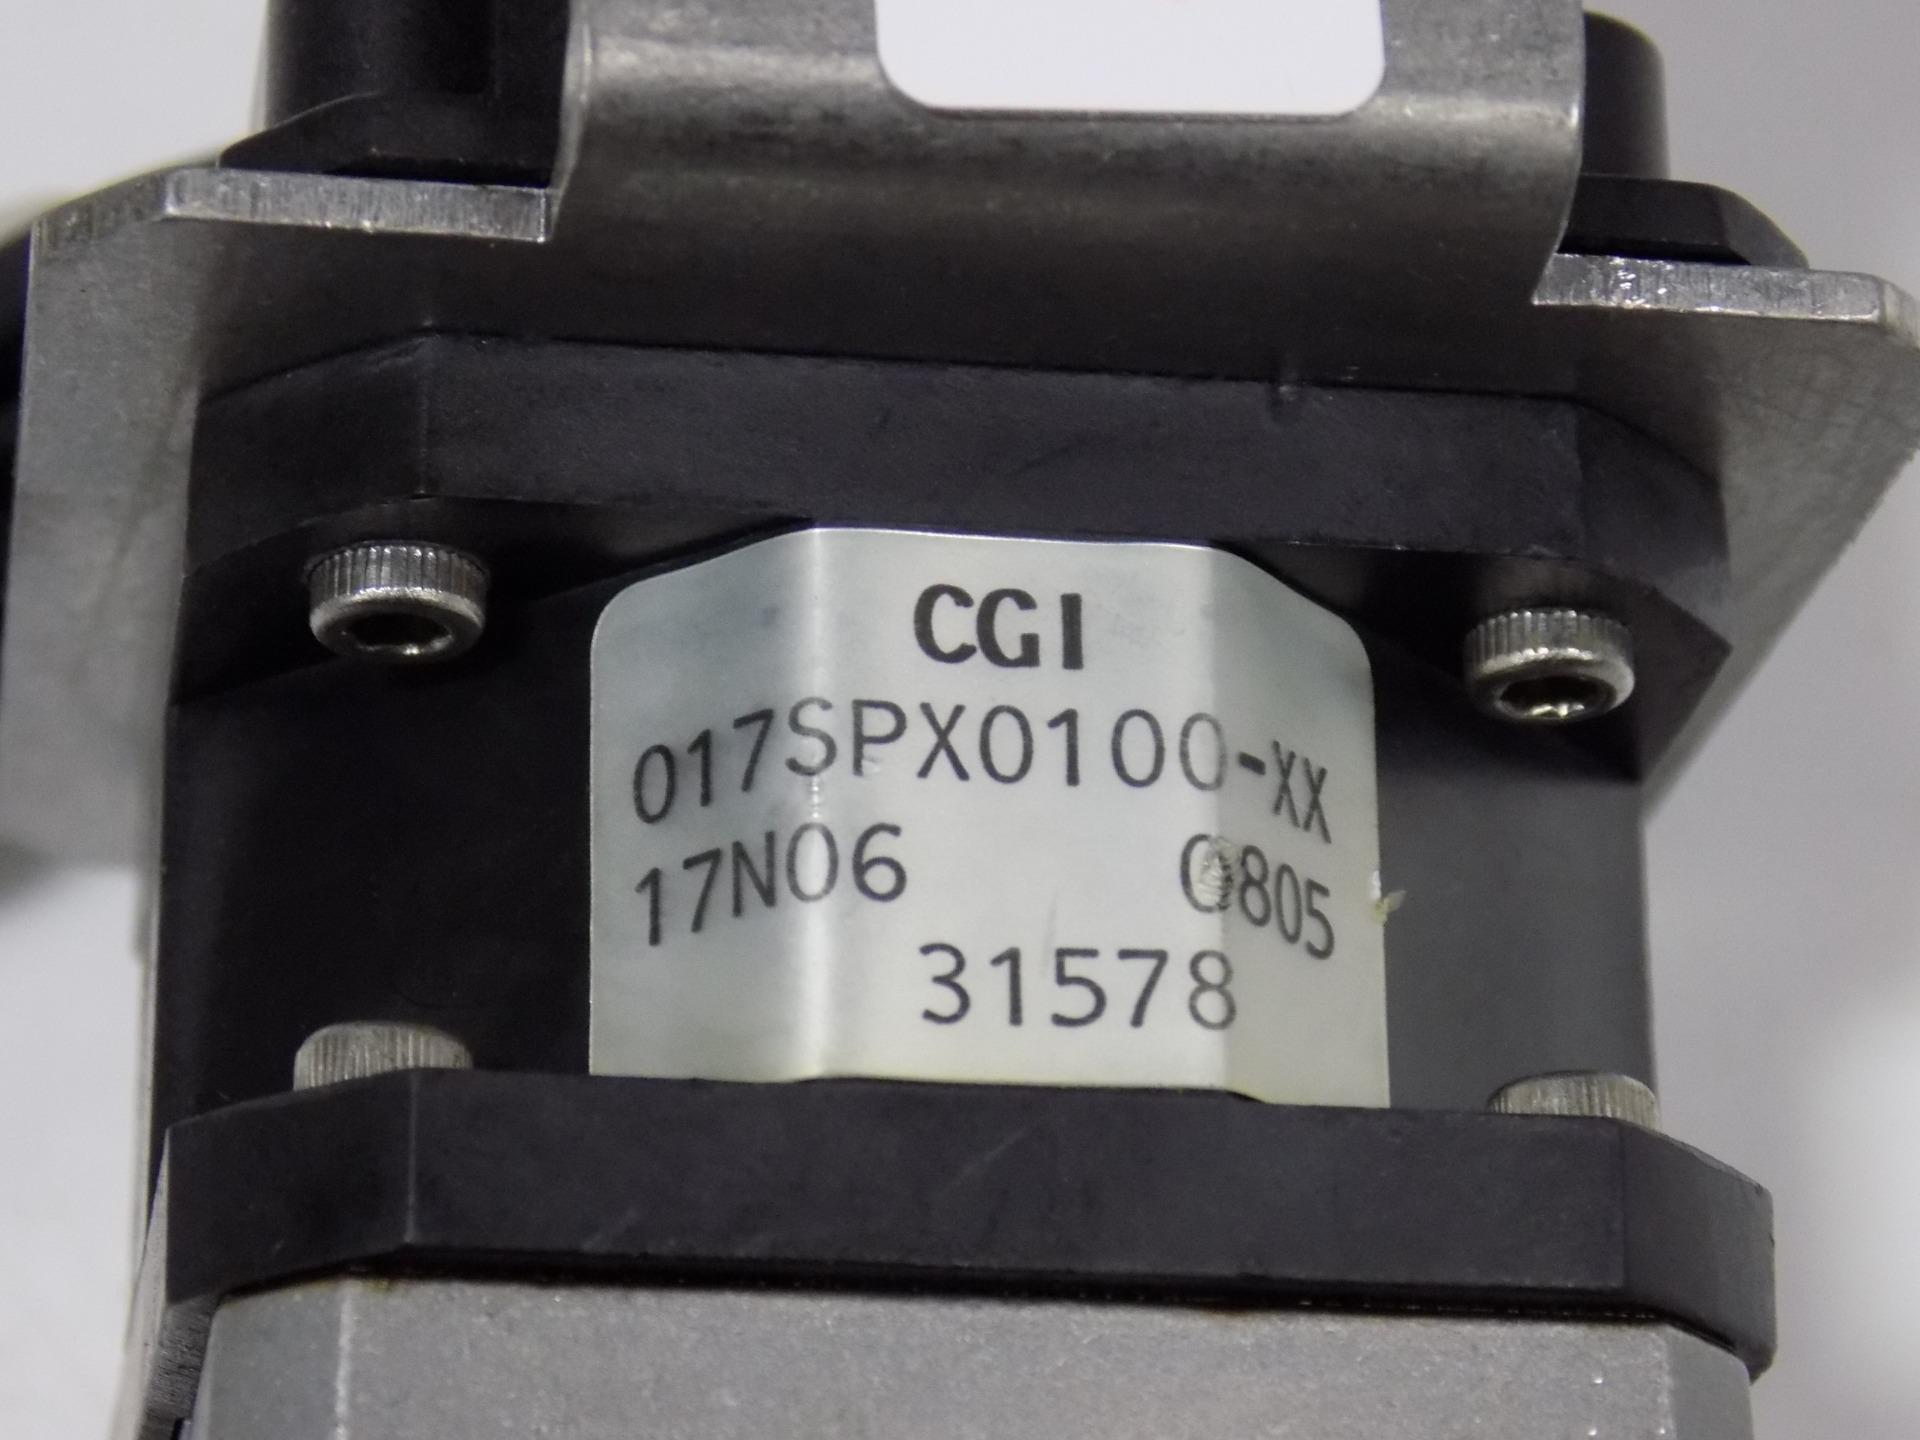 CGI 023SIX1000-XX-23N08 NEW NO BOX 023SIX1000XX23N08